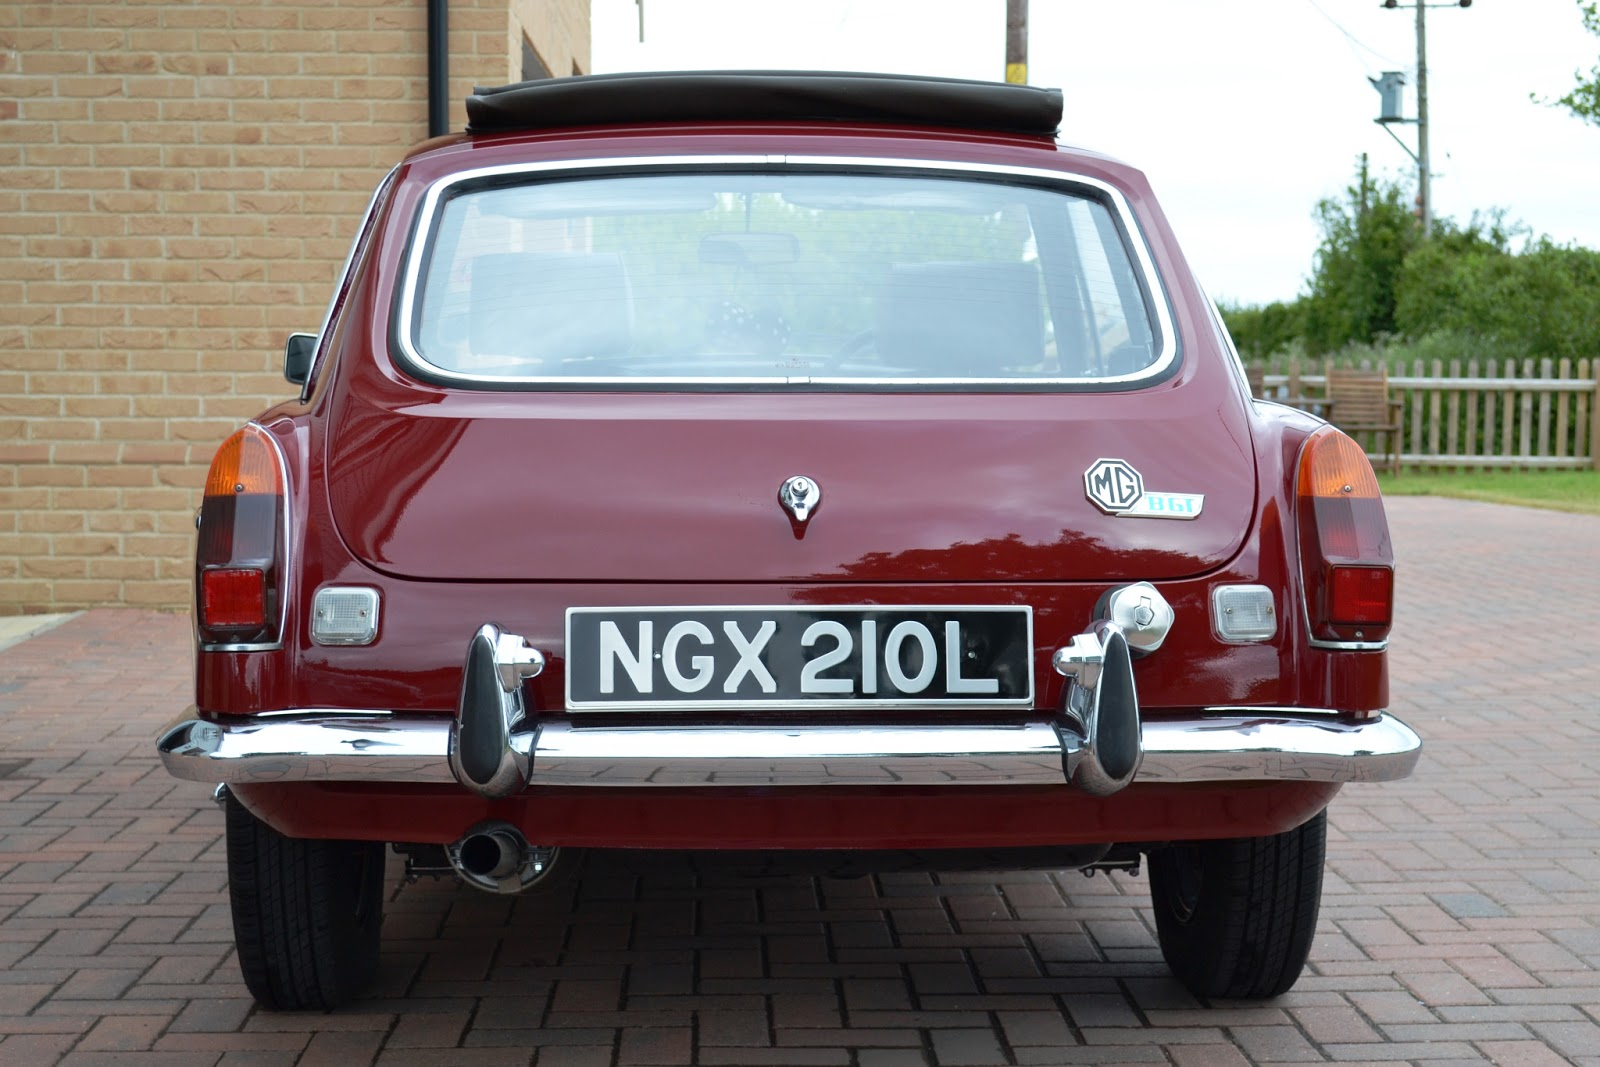 Nigel 72 Mgb Gt British Leyland Radio Wiring The Untouched Rear End Reversing Lights Do Need Replacing As They Have Faded